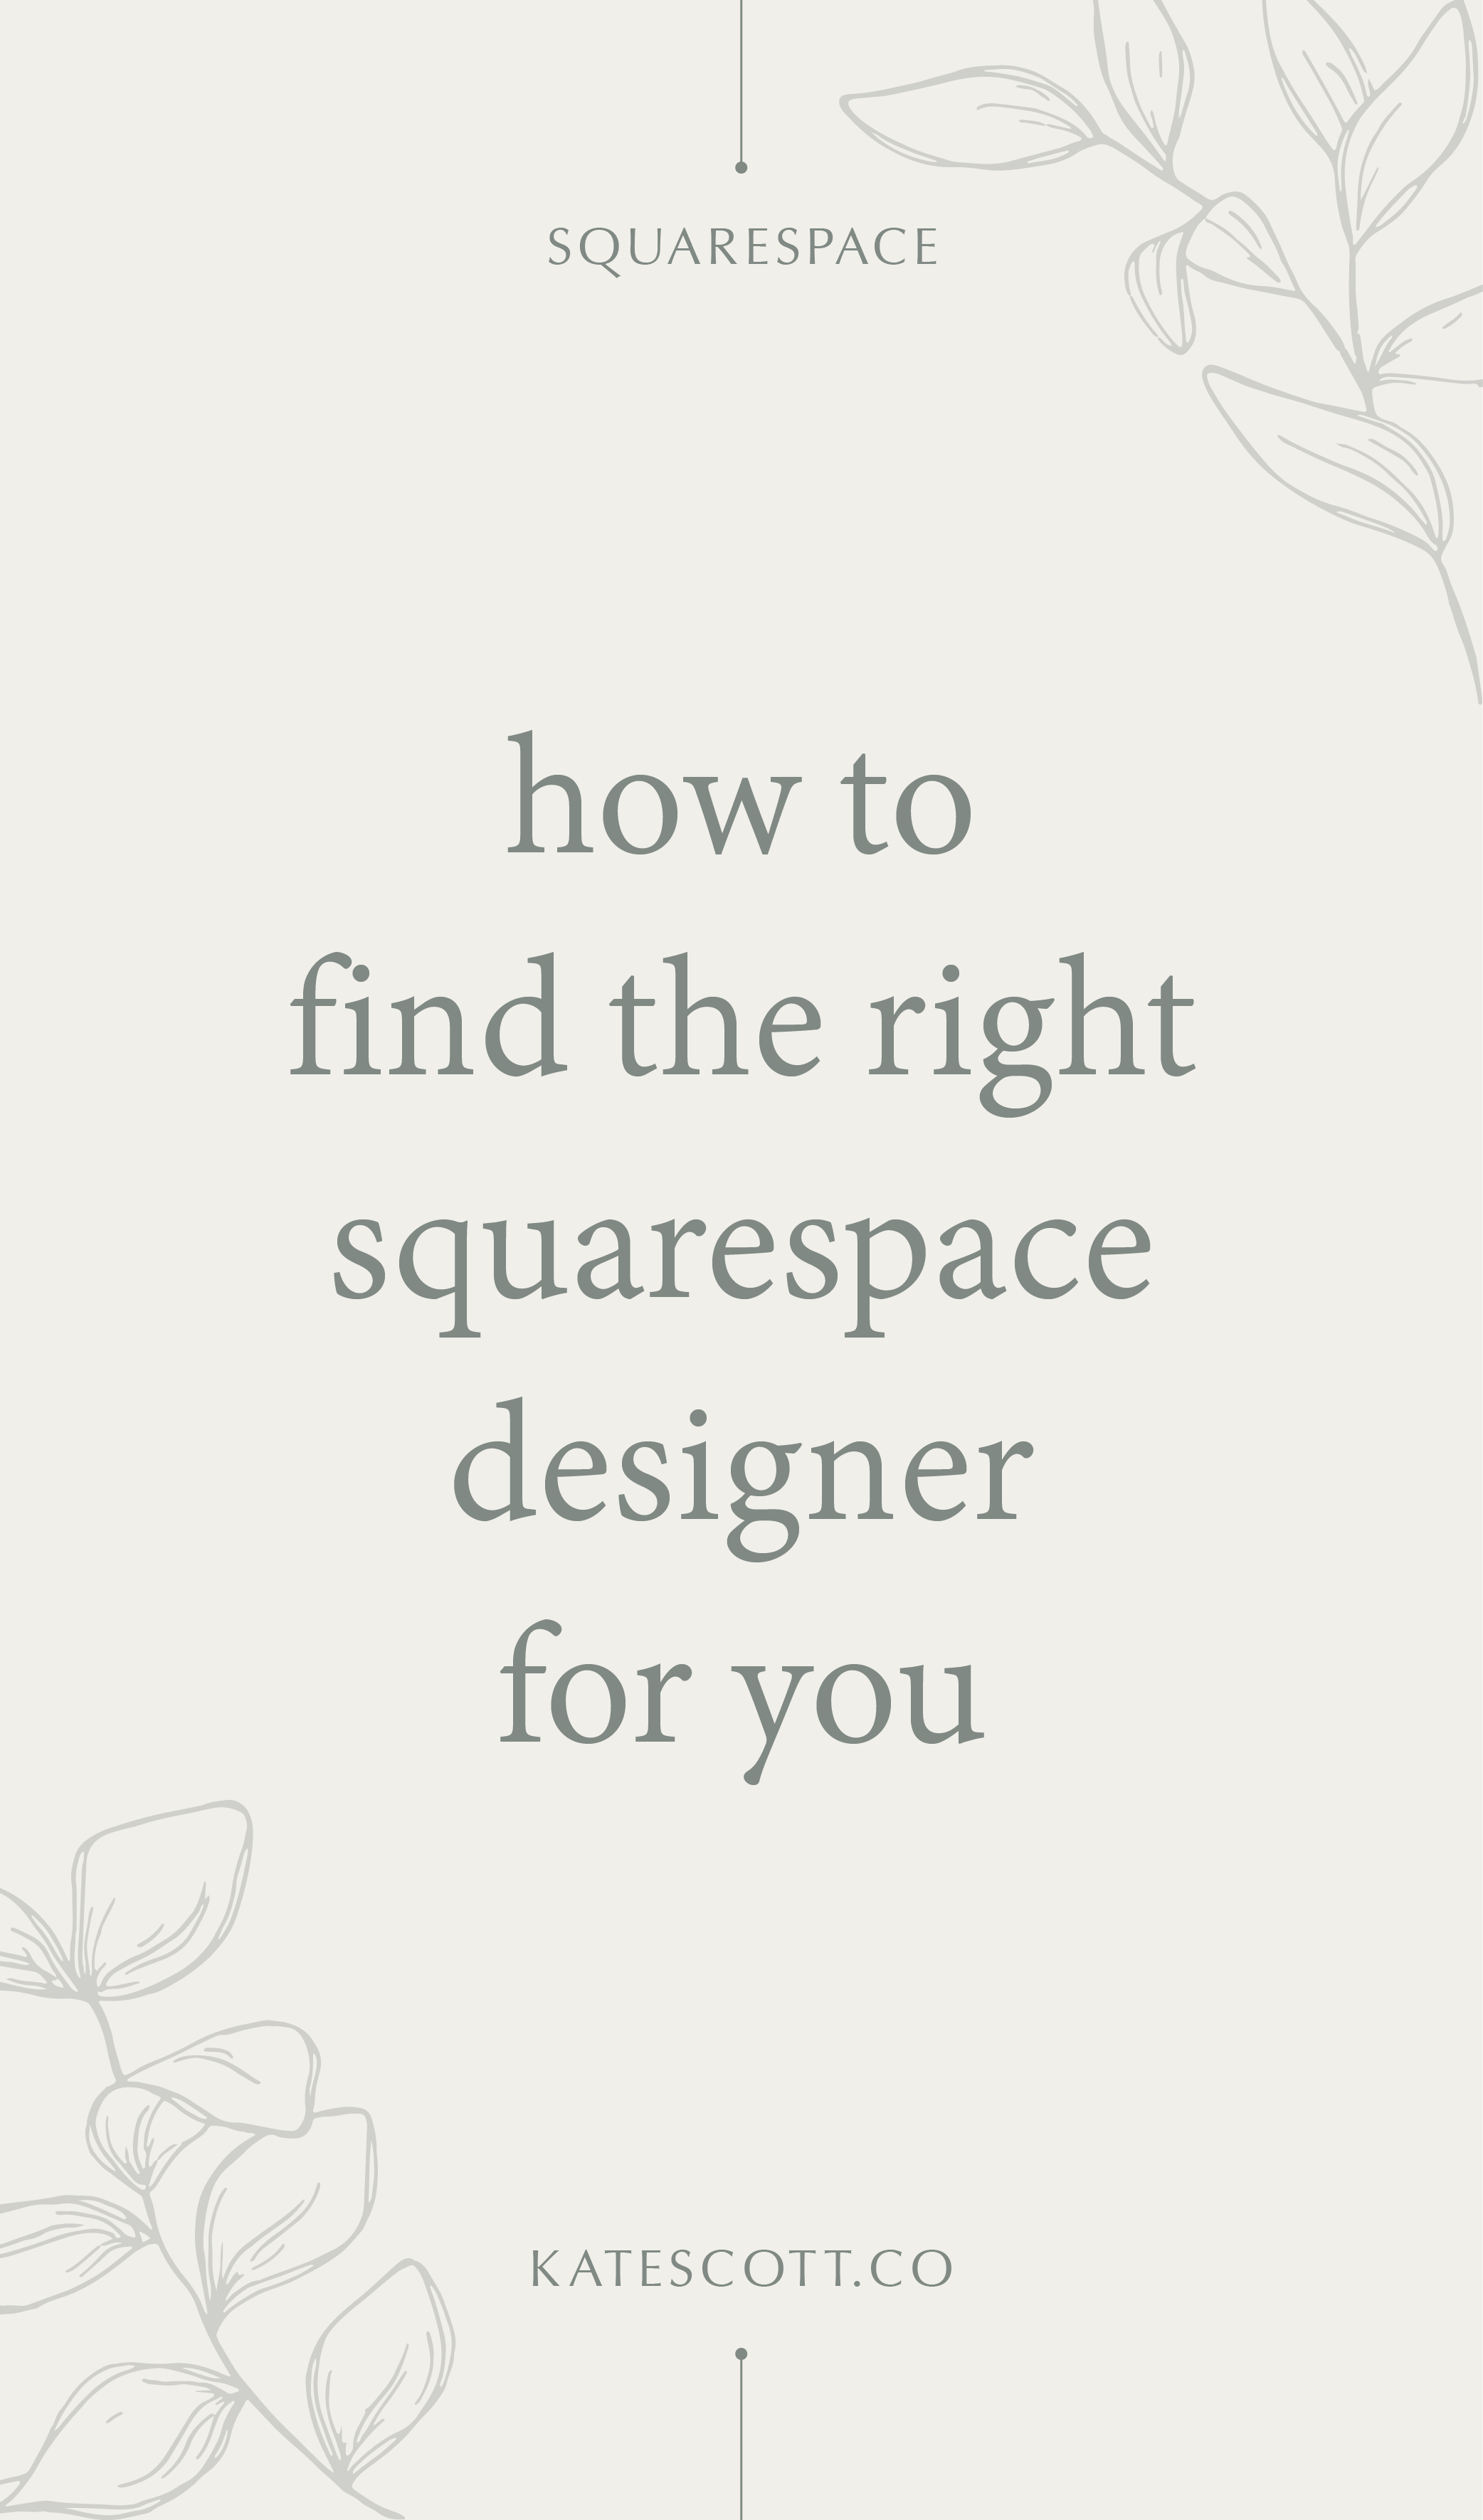 Looking for a Squarespace designer to makeover your website? Here are some tips on how to find the best one for you. | Squarespace Design | Squarespace Designer | Squarespace Tips | Custom Squarespace Design | Custom Web Design | Female Entrepreneur